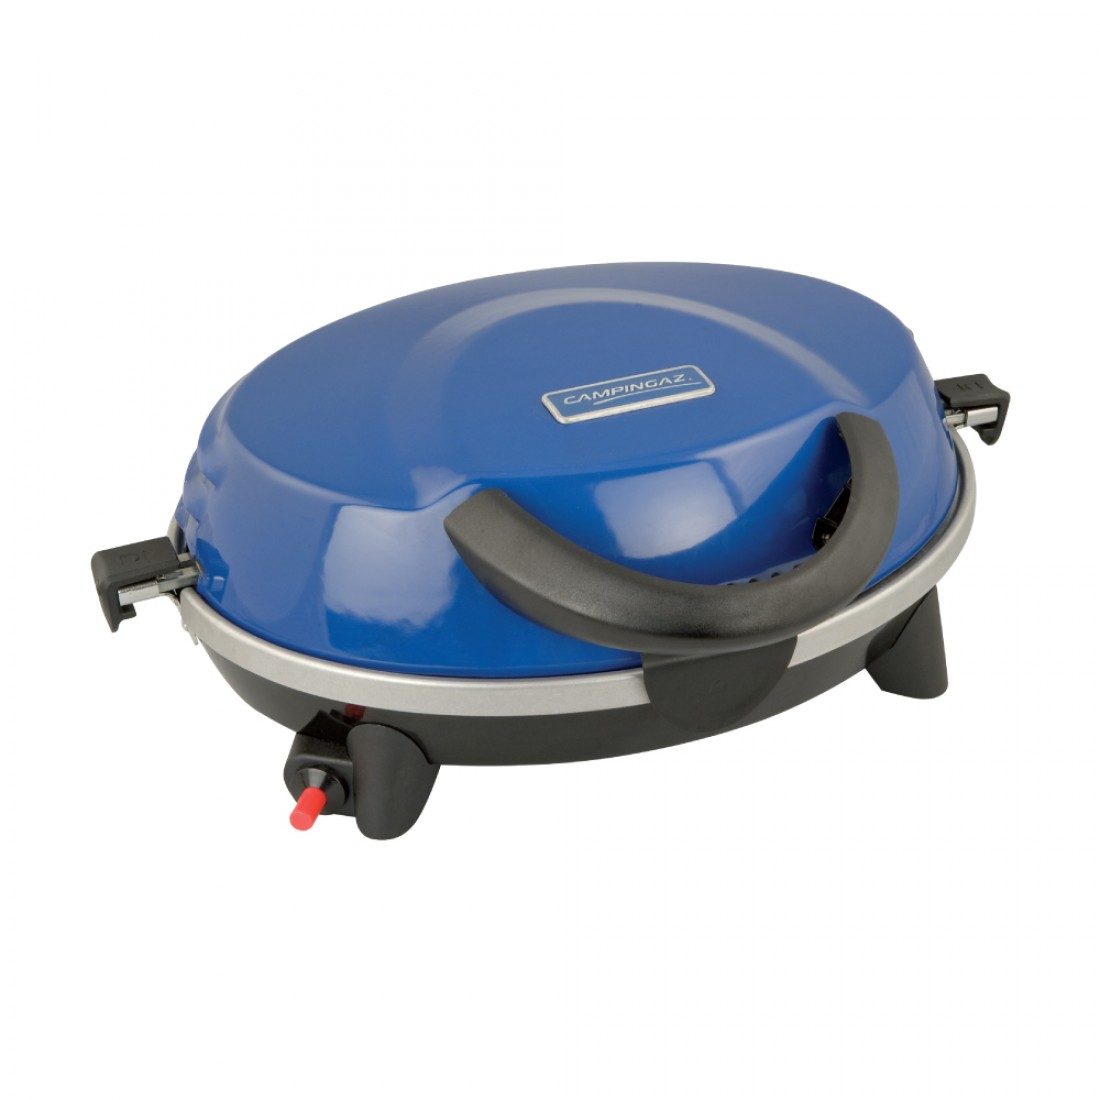 Campingaz BTN All-In-One Grill Stove